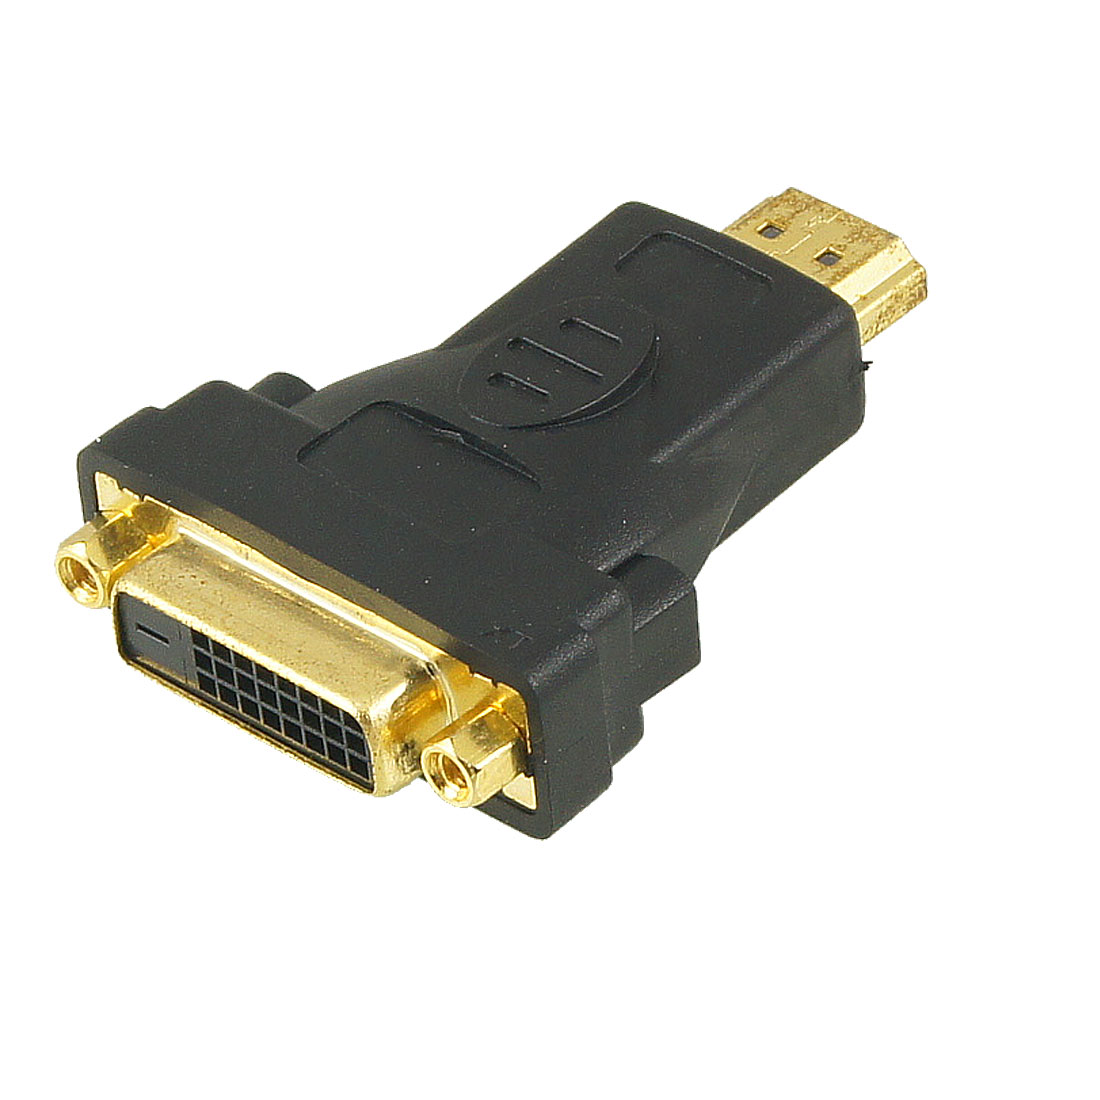 DVI-D 24+1 Female to HDMI 19 Pin Male Connector Adapter